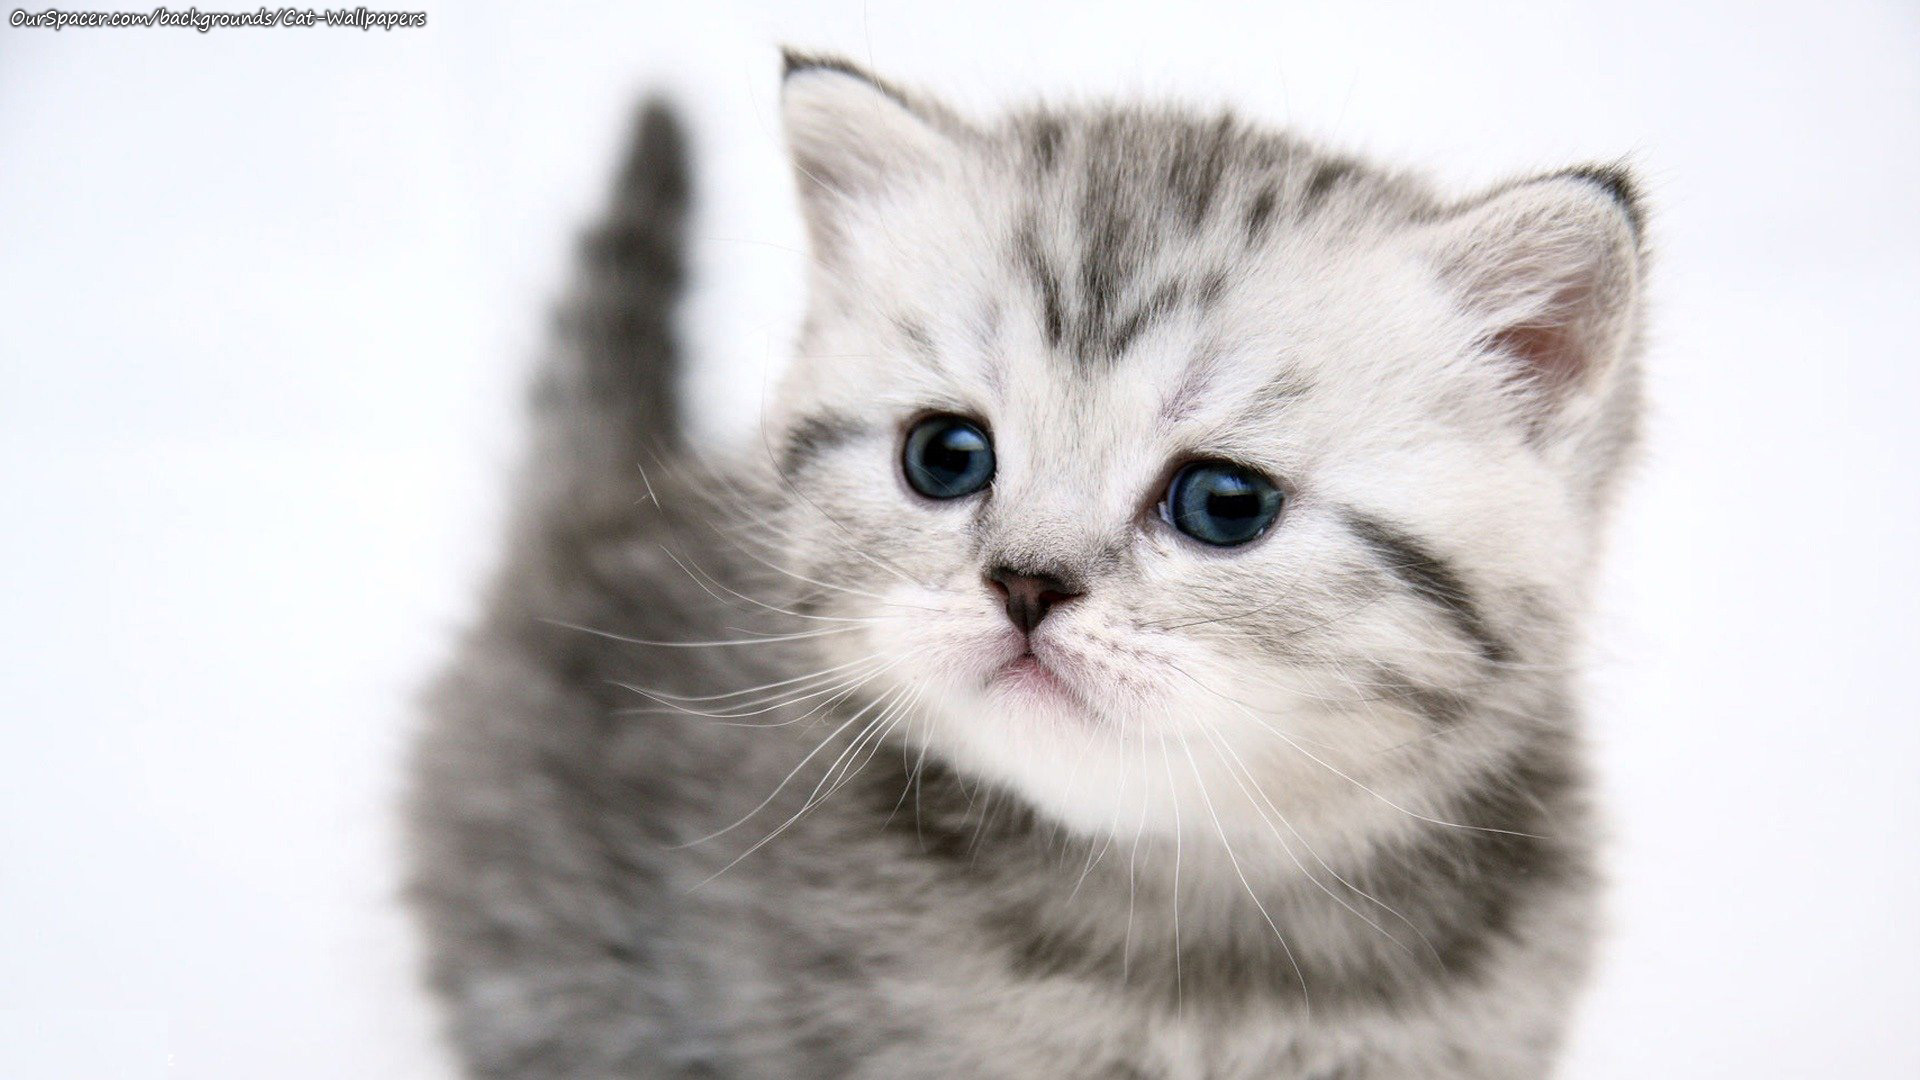 Black and white kitten wallpapers for myspace, twitter, and hi5 backgrounds